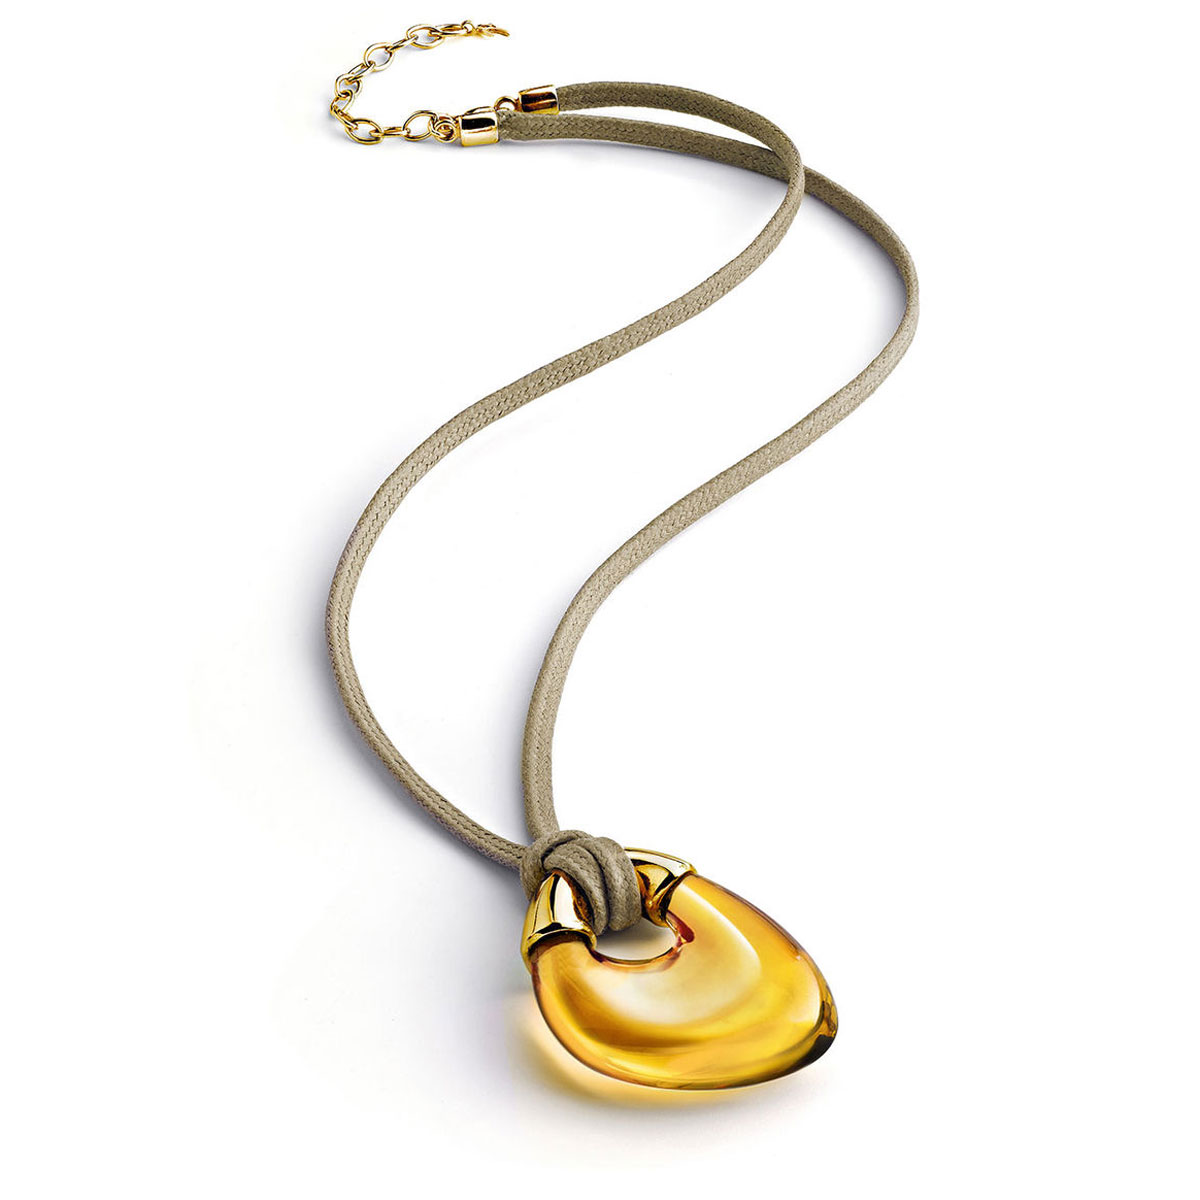 Baccarat Crystal Galea Pendant Necklace Vermeil Gold Honey